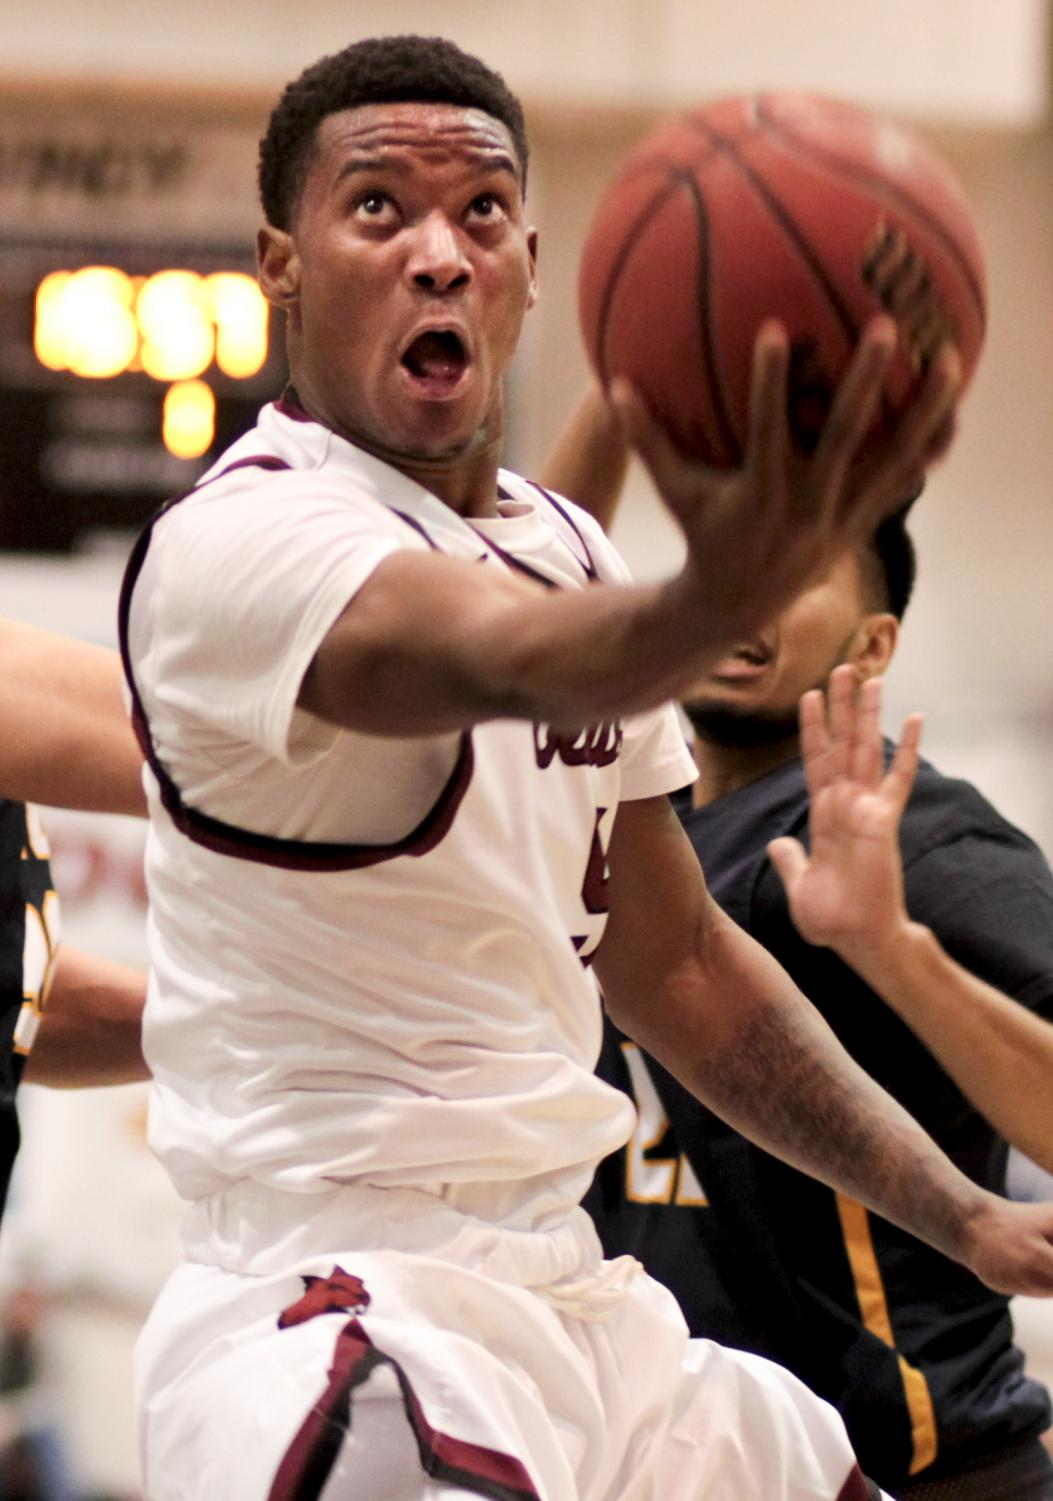 Japan Stepney goes up for a basketball in the Oct. 31 game against Northwest University.